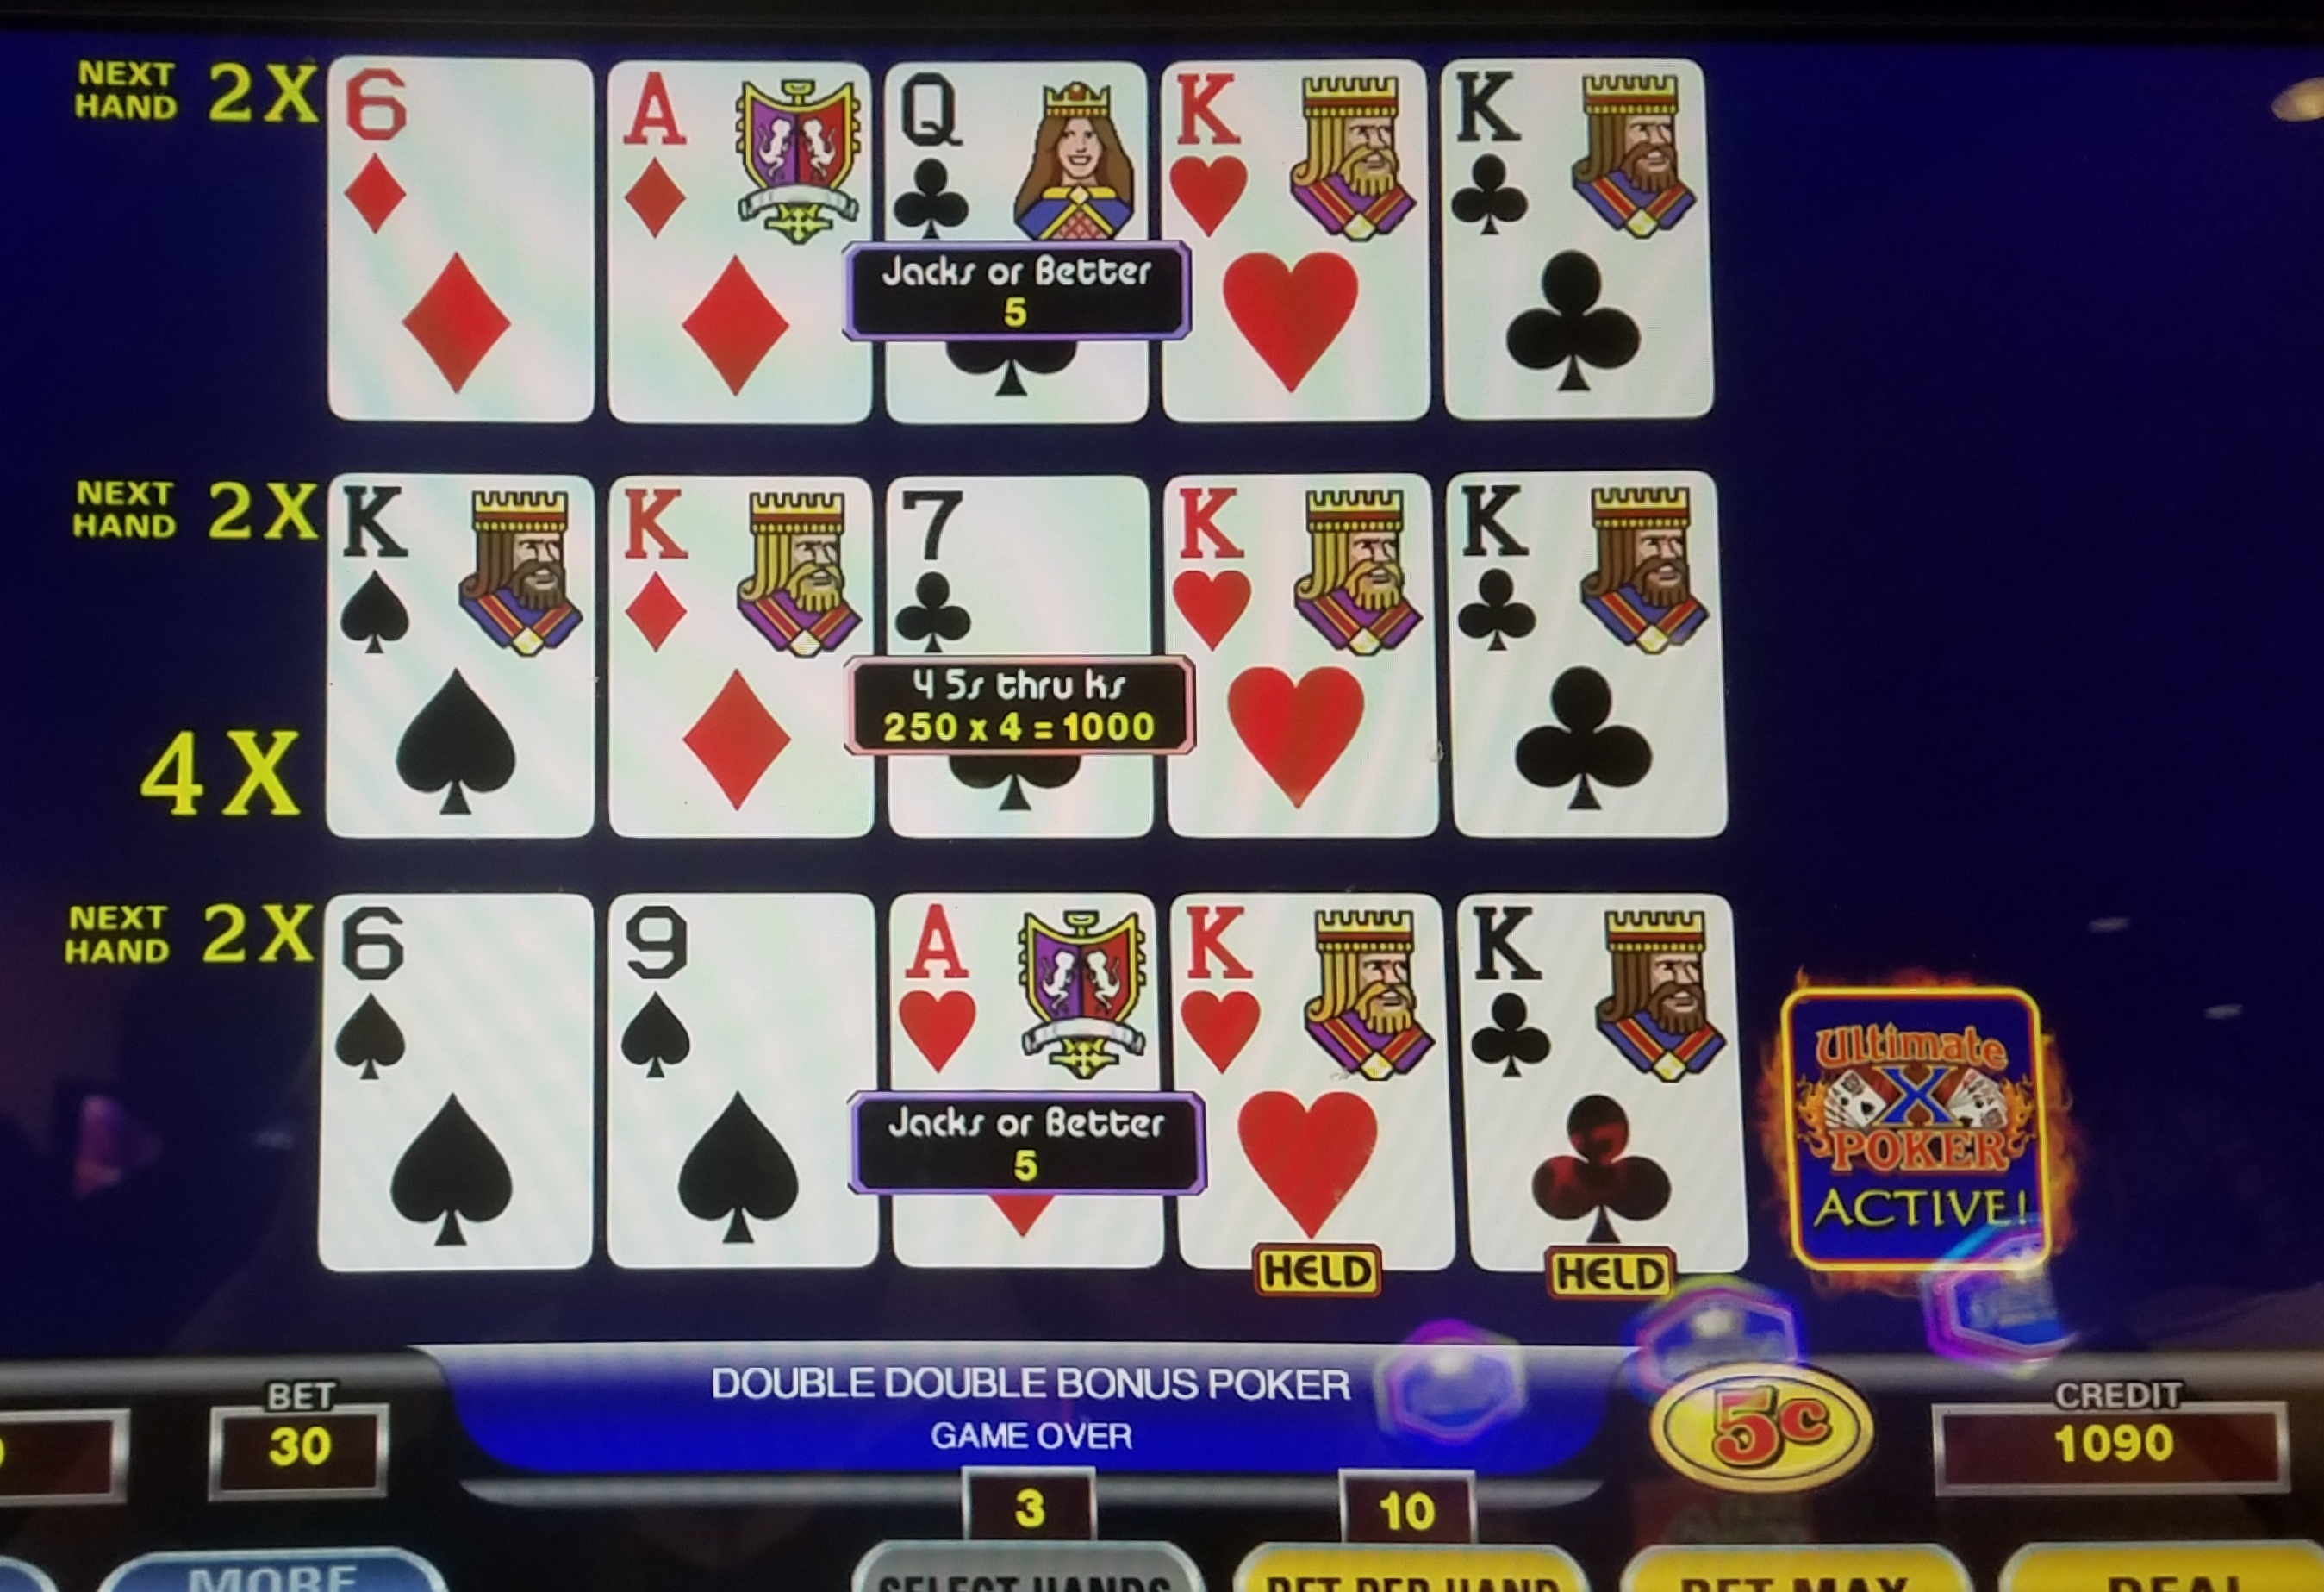 Atlantic city video poker pay tables ted lawson poker